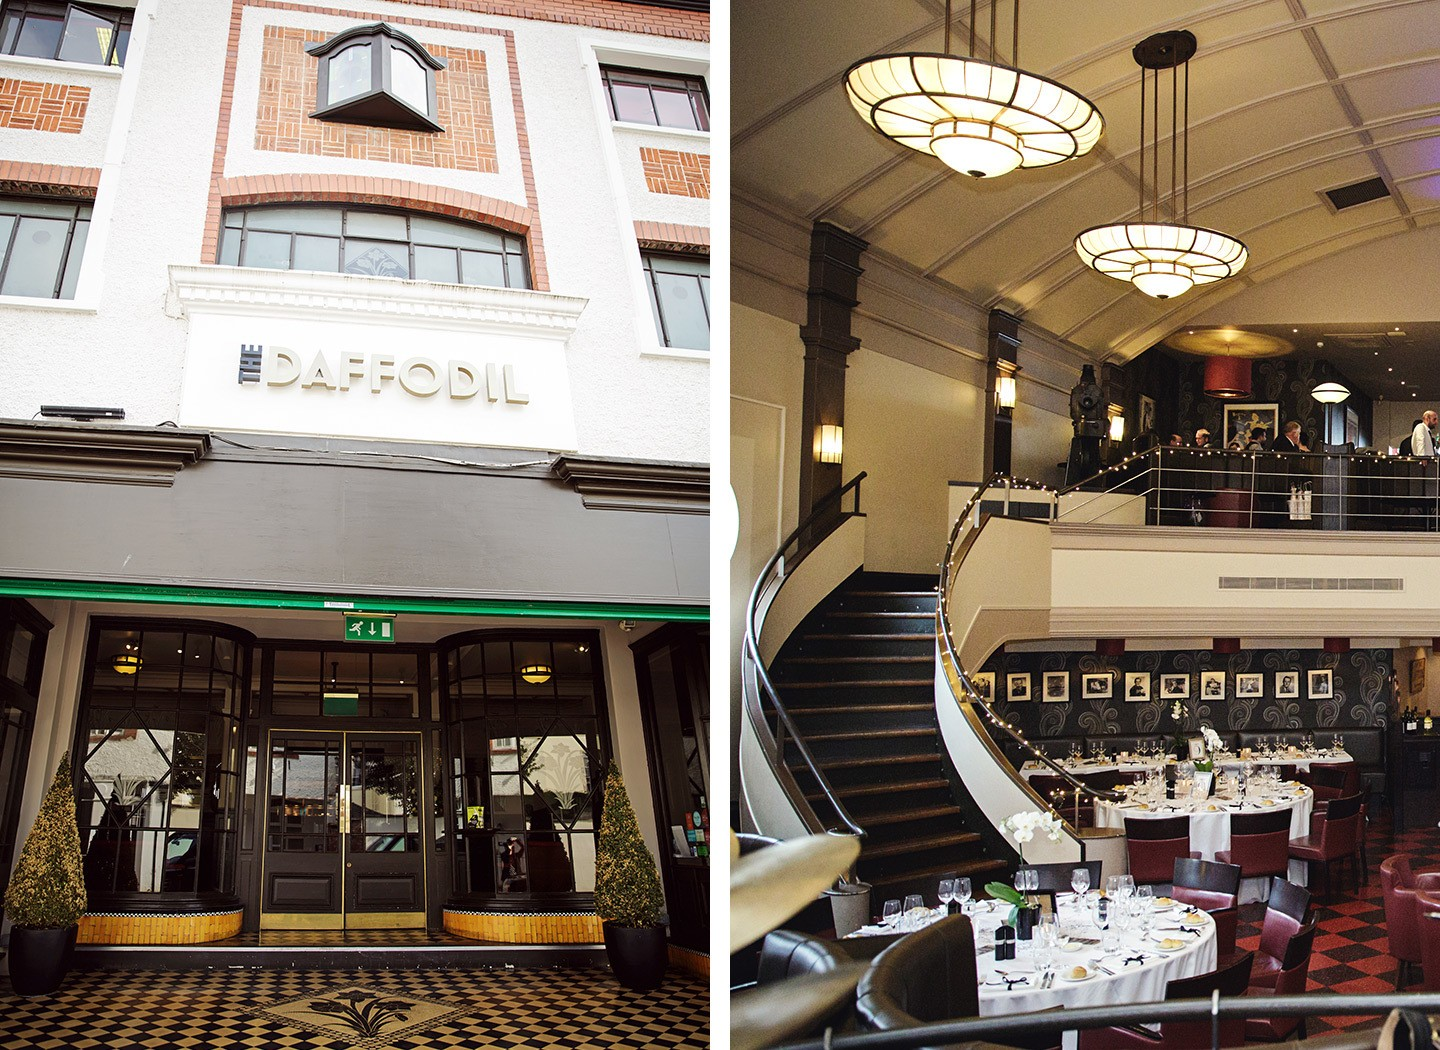 Exterior and interior of the Daffodil art deco restaurant in Cheltenham